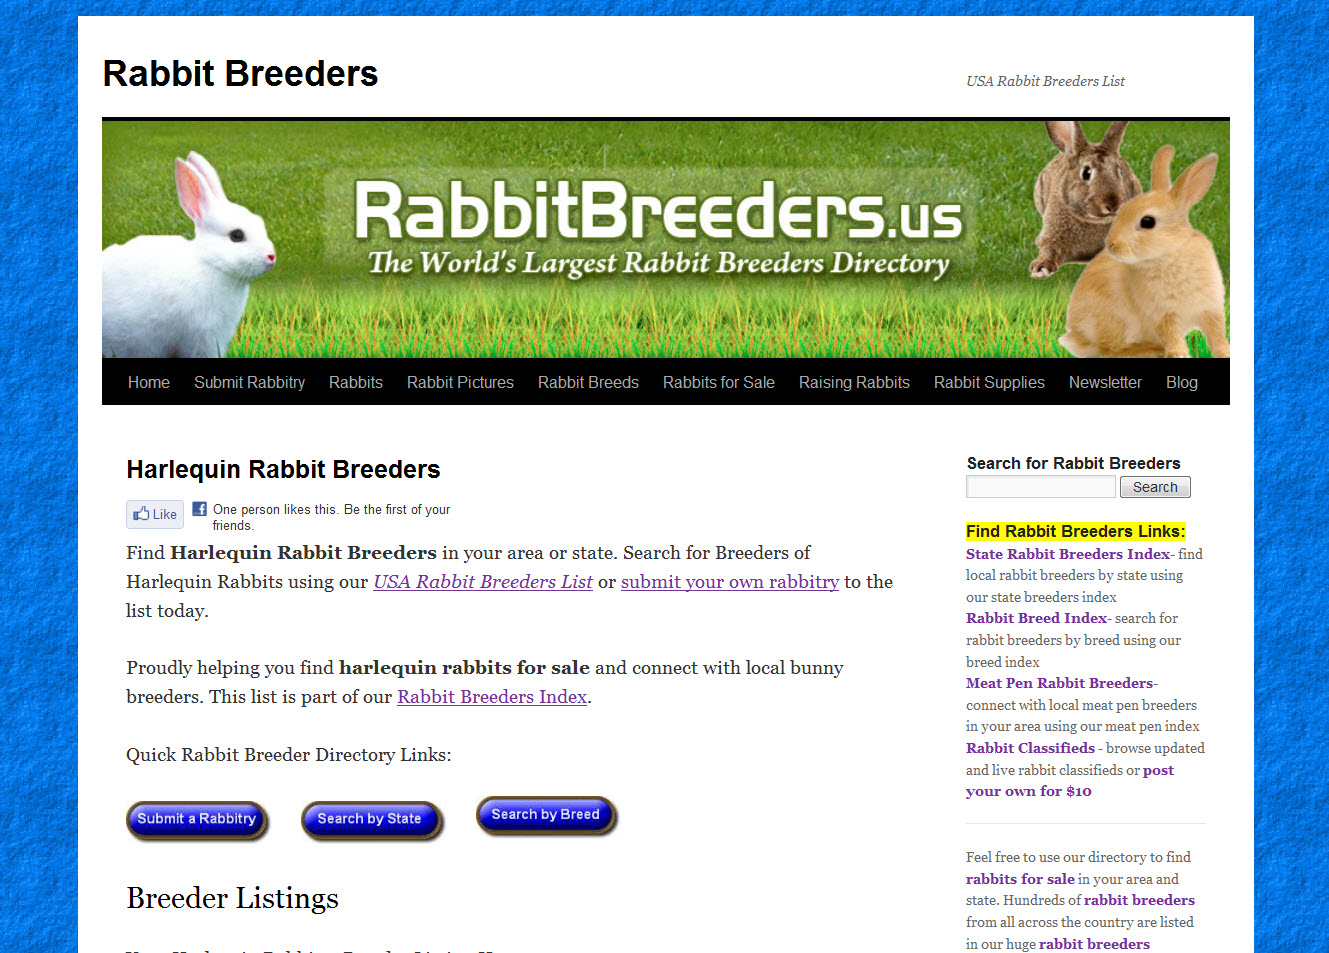 Harlequin Rabbit Breeders